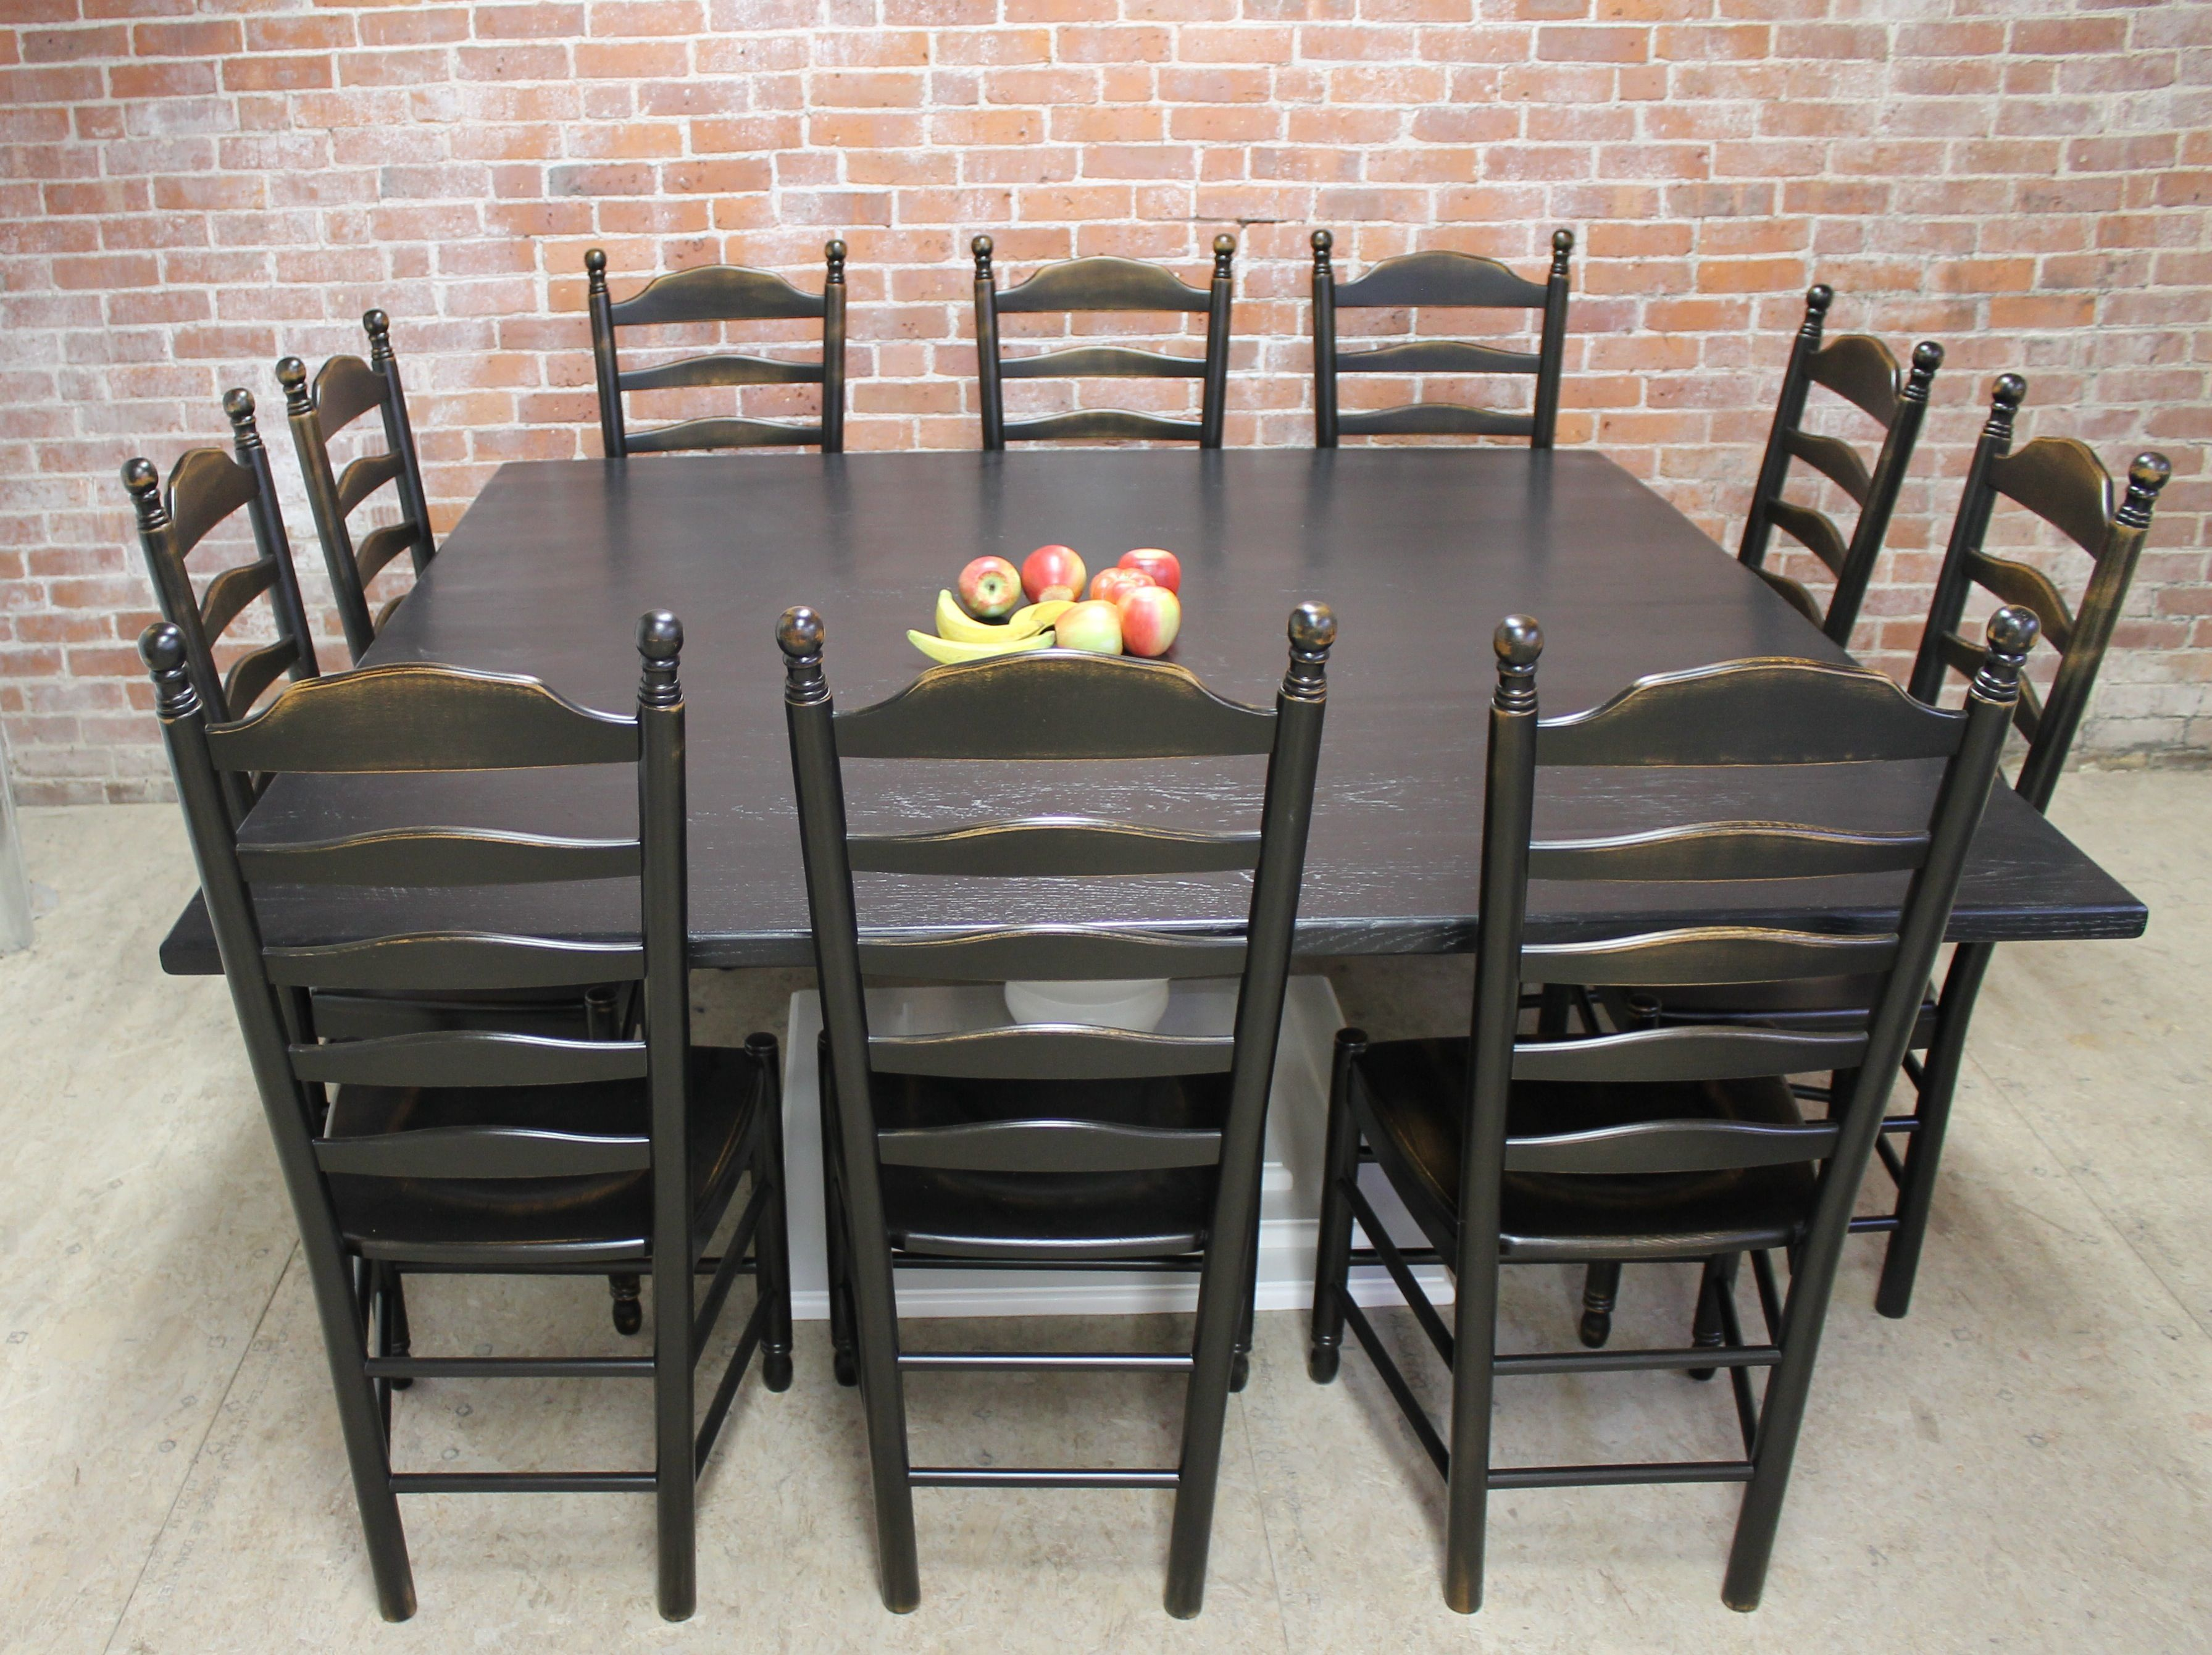 72inch Square Black and White Table